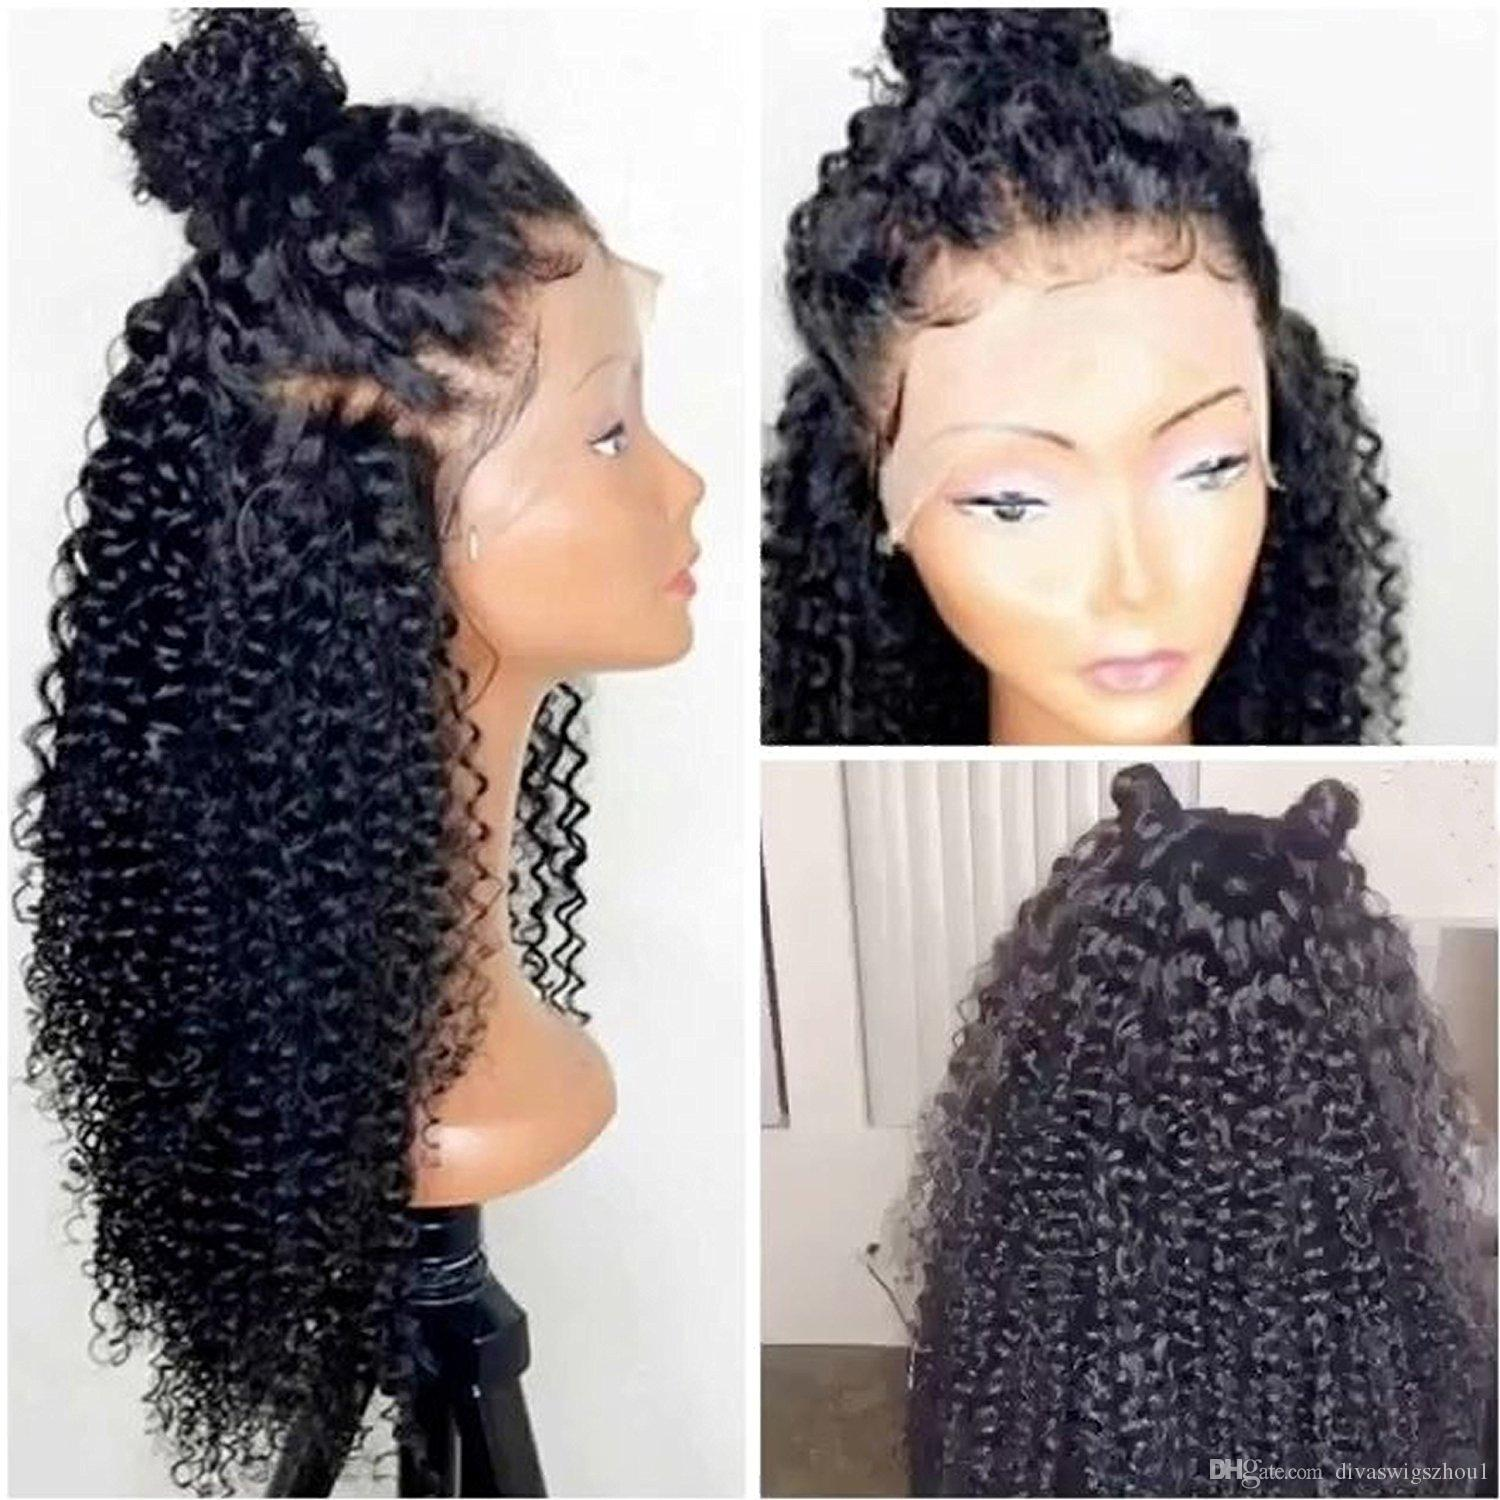 360 Lace Frontal Wig Kinky Curly 180% Density Full Natural 360 Lace Wig  High Ponytail Lace Front Human Hair Wig For Black Women Lace Wig Glue Wigs  For Men ... bc7f1c95d0